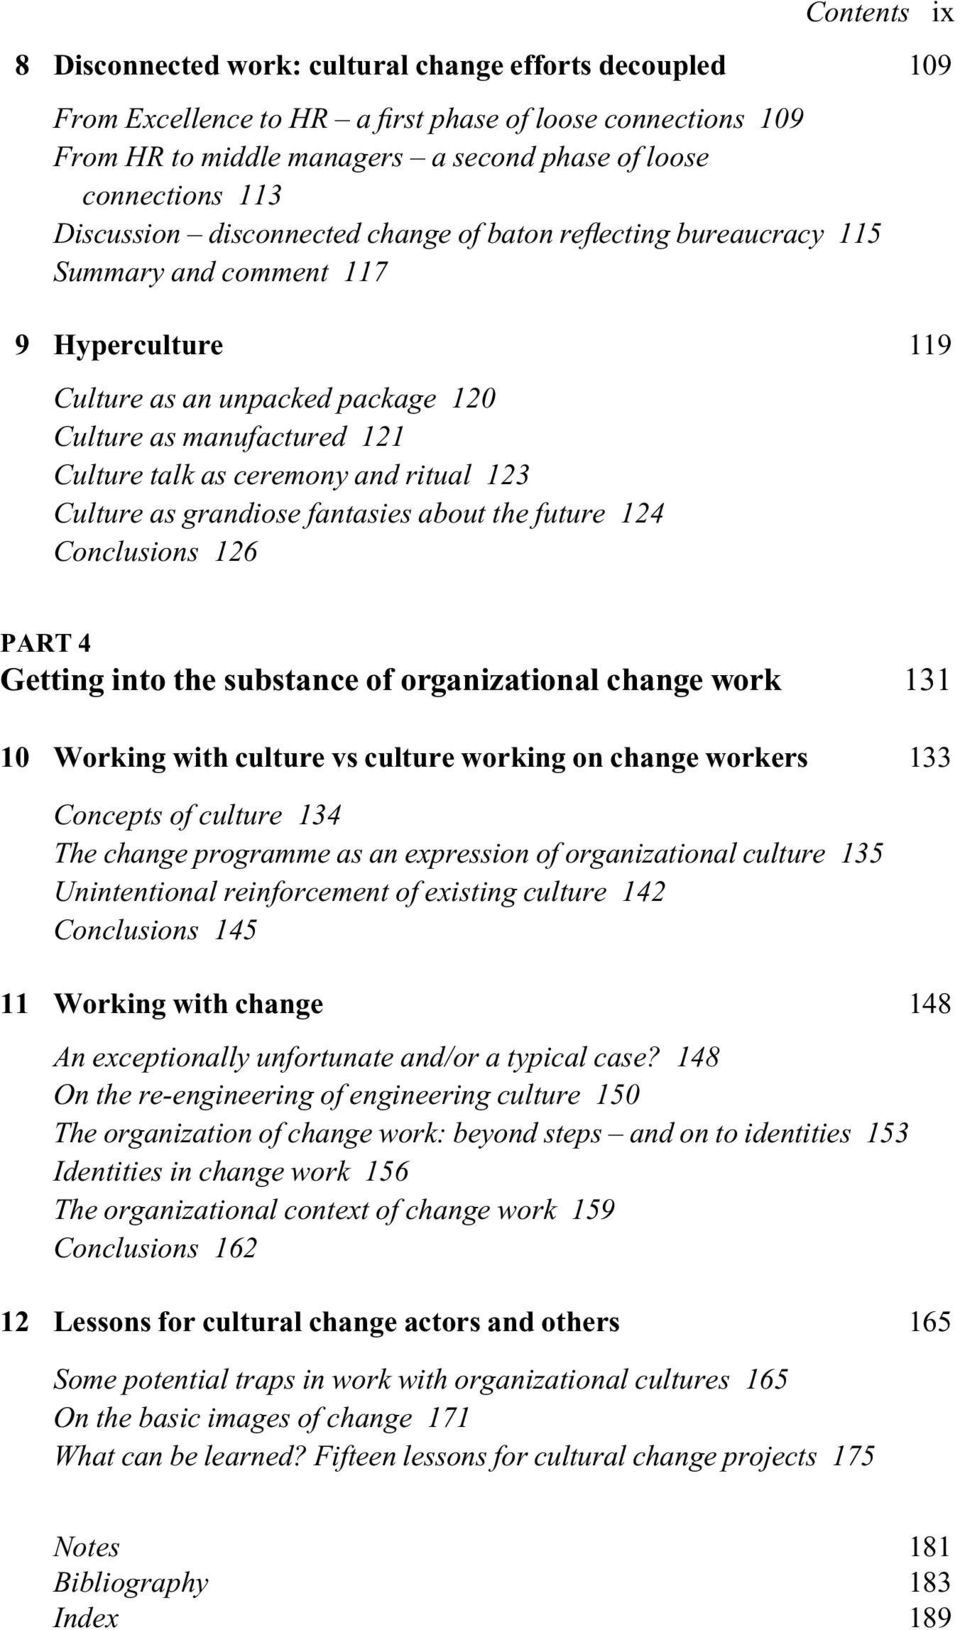 conclusion of organizational change